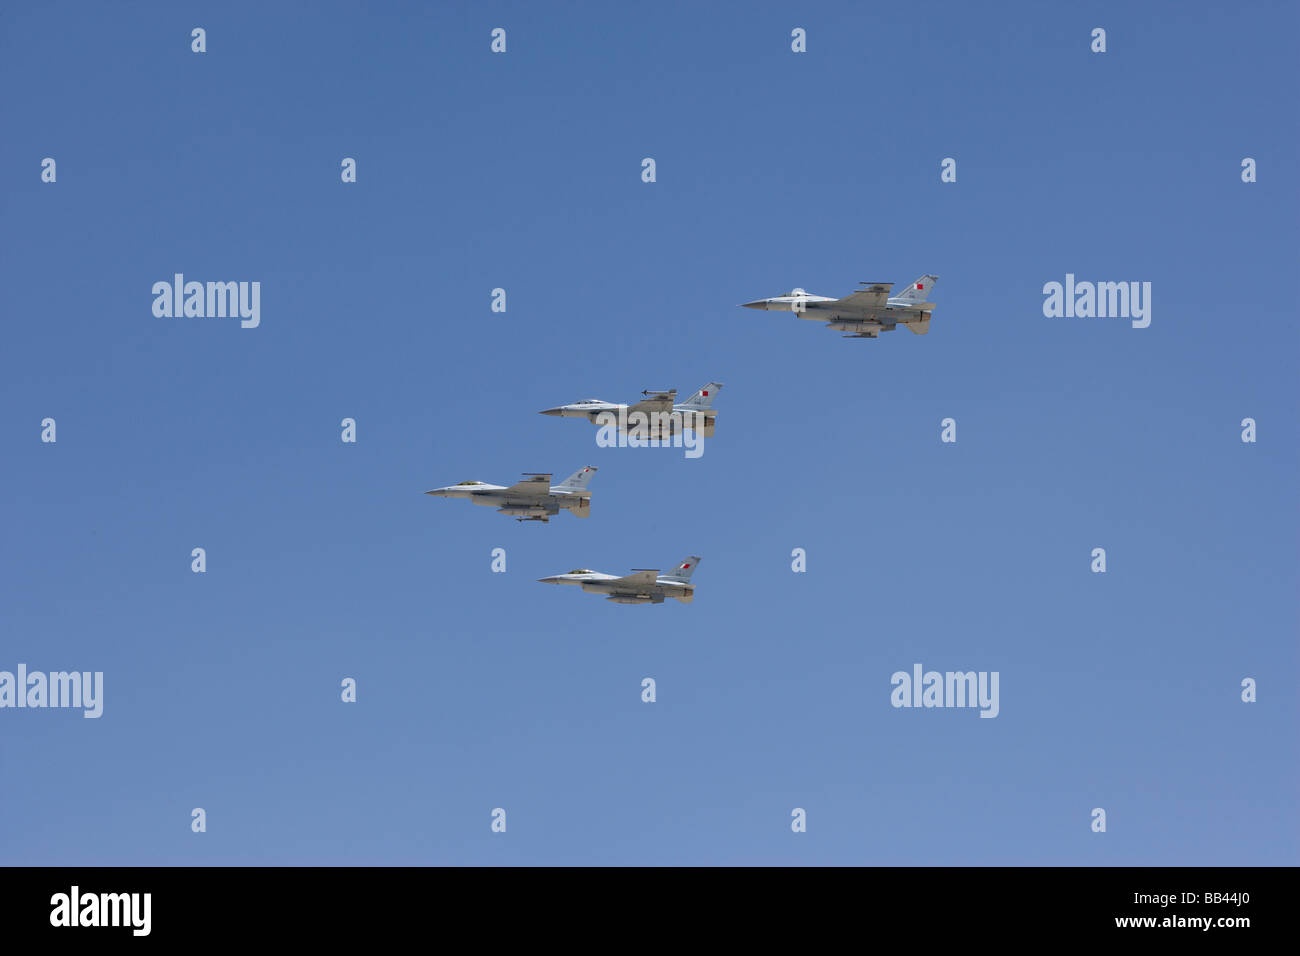 4 Bahrain air force army jets in a blue sky - Stock Image